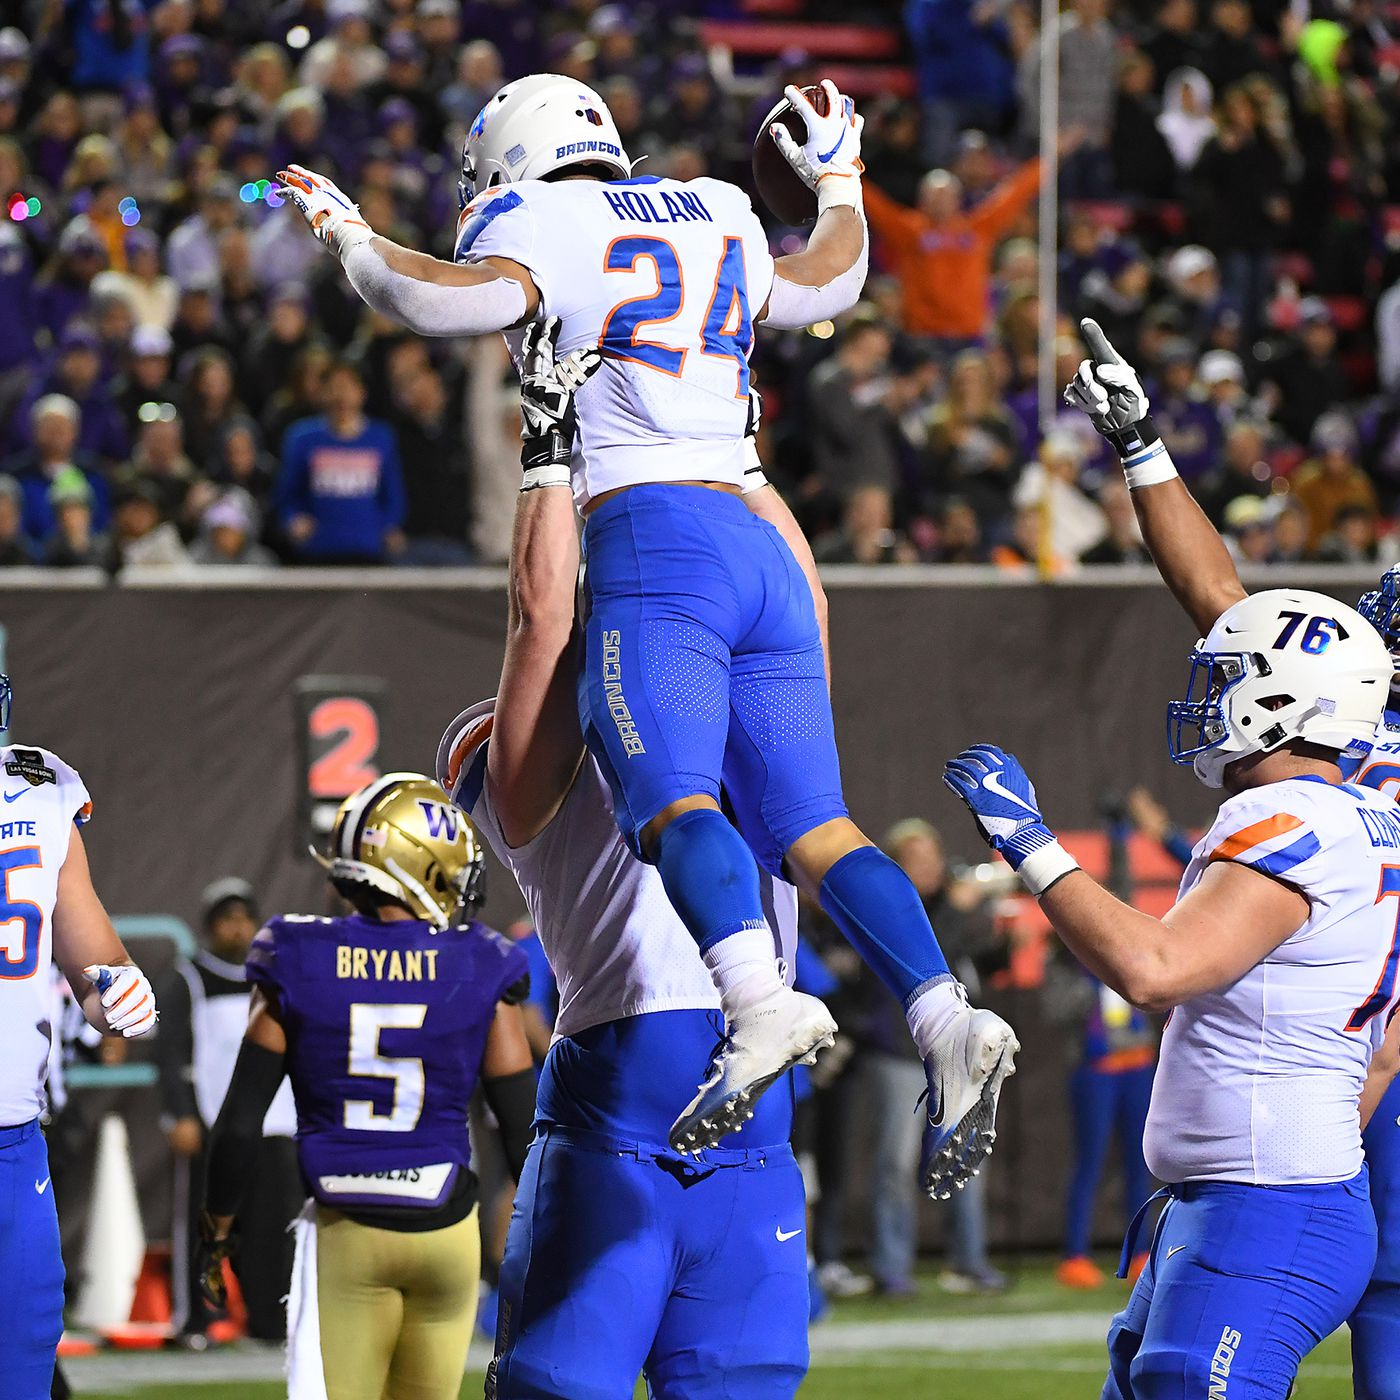 2020 Boise State Recruiting Roundup 12 23 19 One Bronco Nation Under God